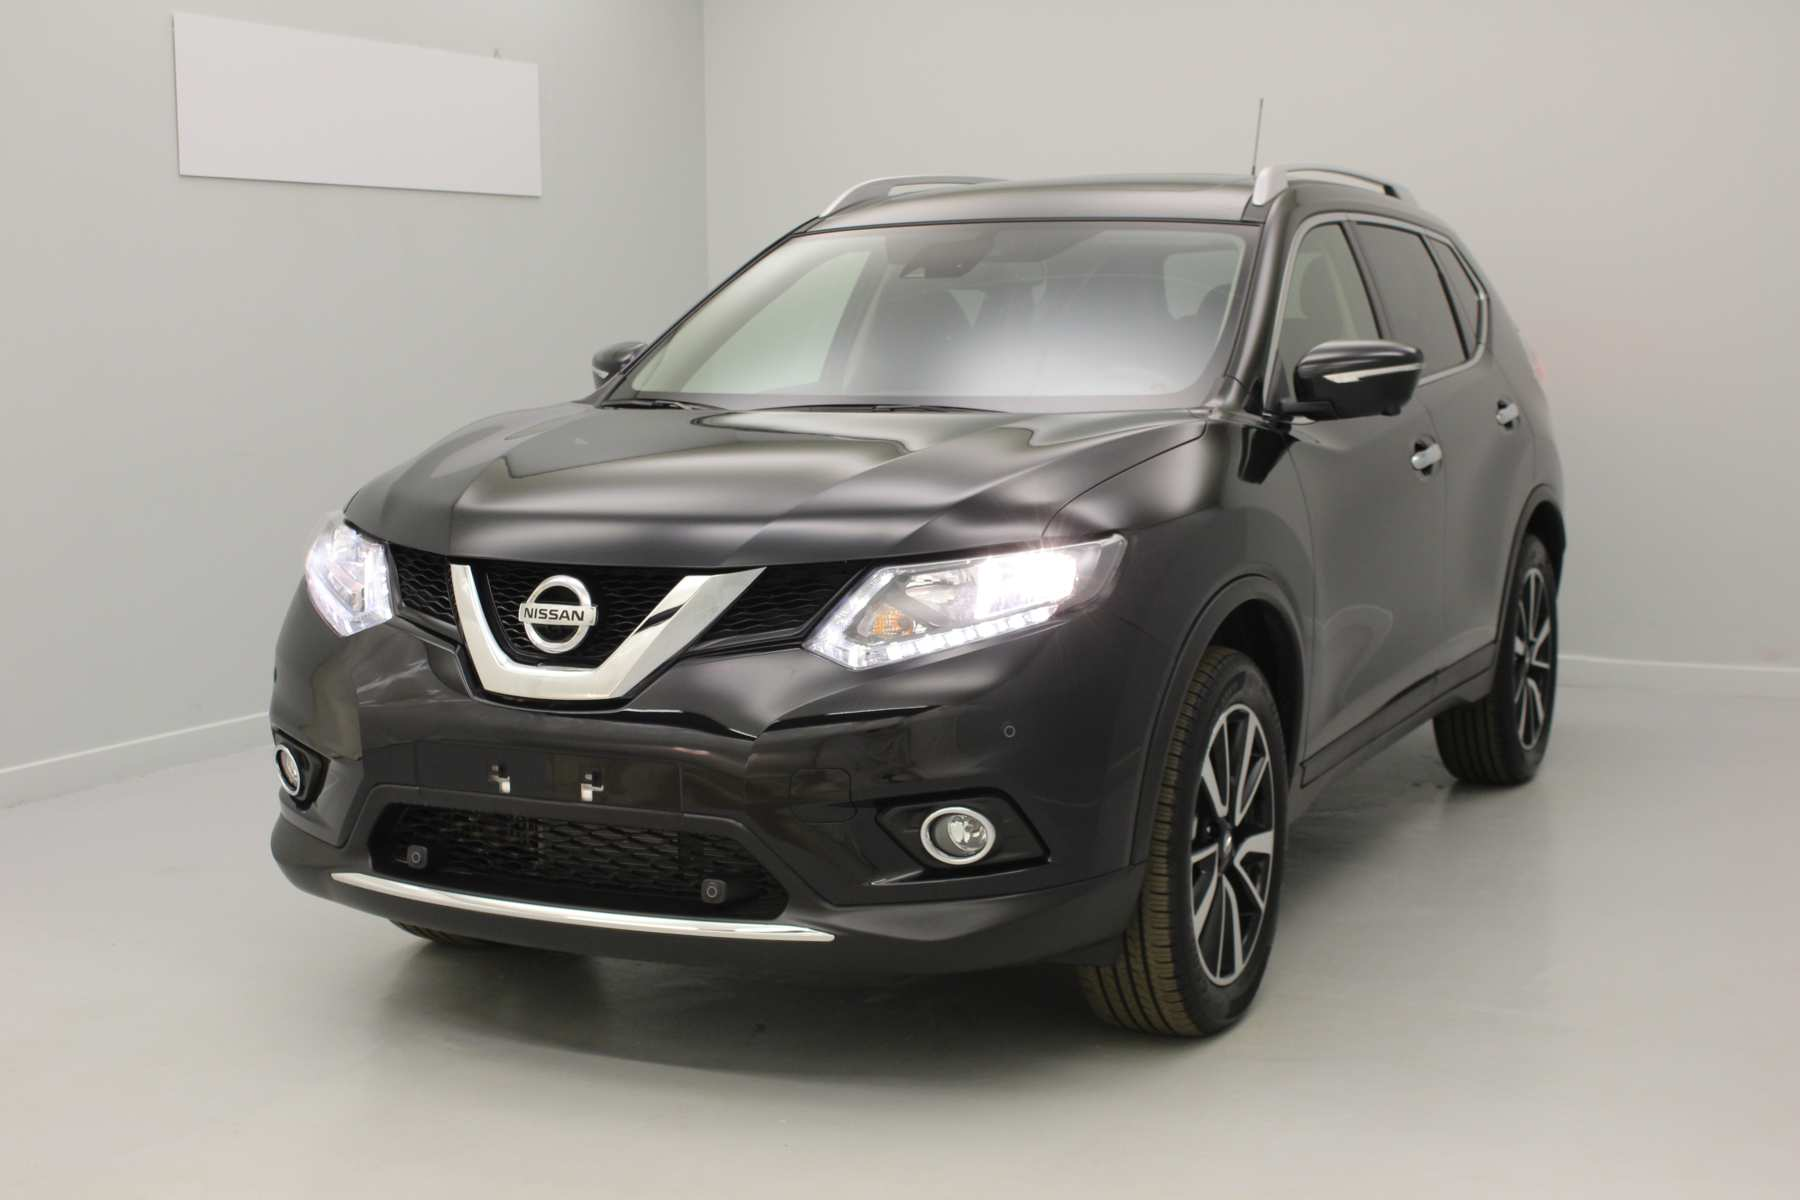 NISSAN X-Trail 1.6 dCi 130 Euro 6 5pl All-Mode 4x4-i Tekna Noir Intense avec options